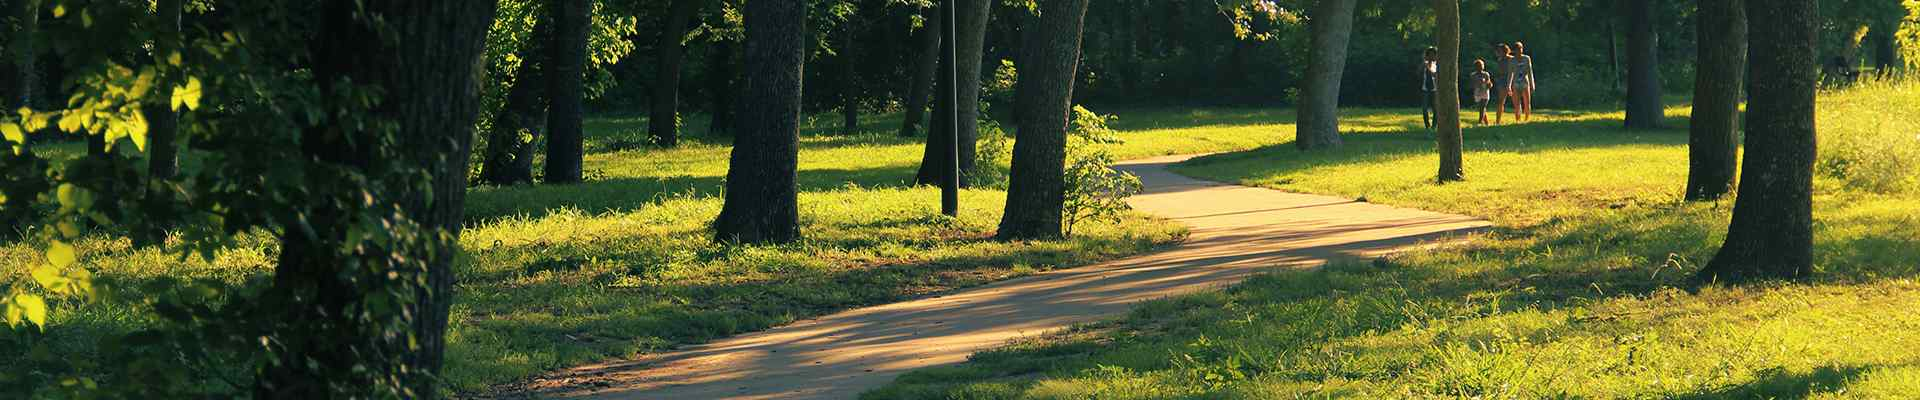 a path through the trees in university park texas